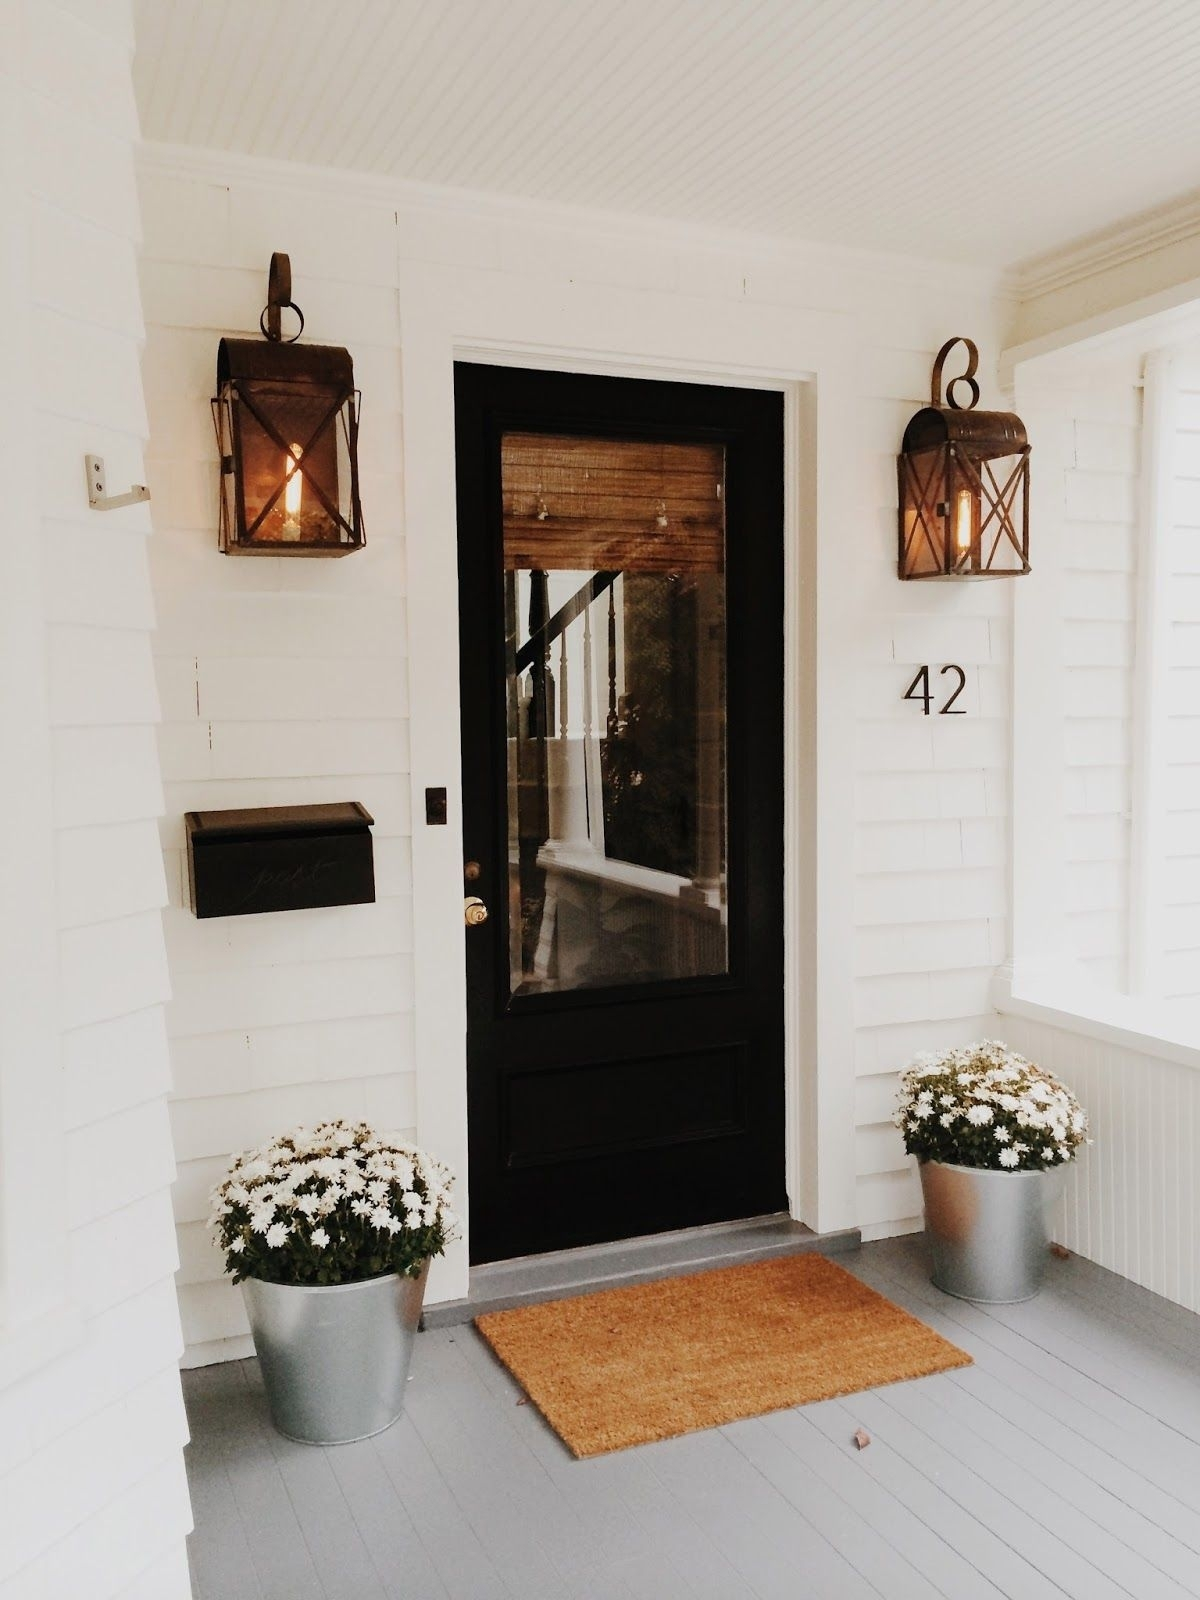 Modern Cottage Style In Connecticut | H O M E & G A R D E N Regarding Outdoor Lanterns For Porch (View 15 of 20)